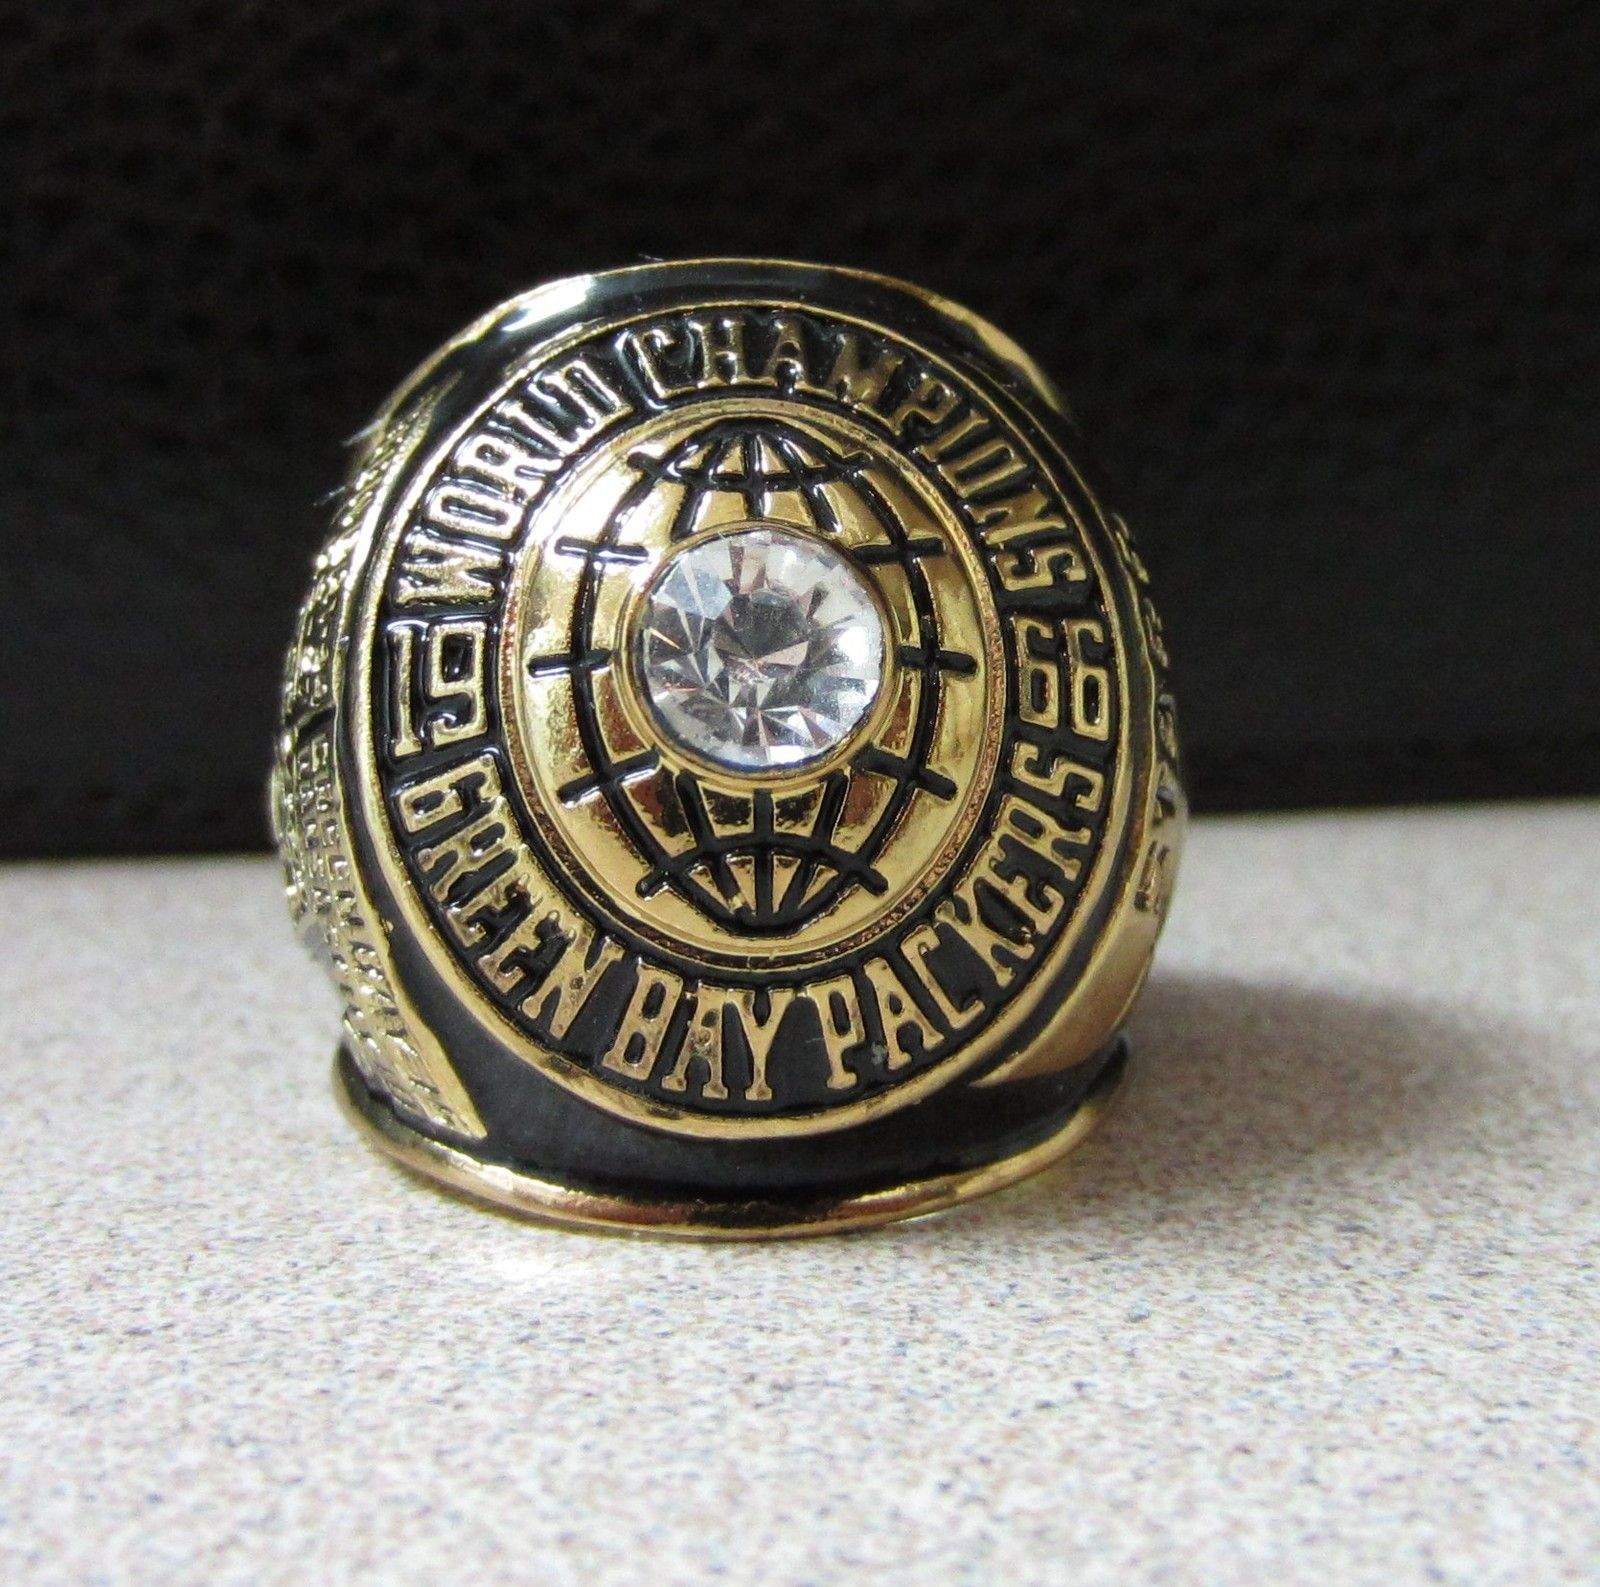 Vintage Green Bay Packers 1966 Replica Super Bowl Ring Starr Engraved Super Bowl Rings Green Bay Packers Green Bay